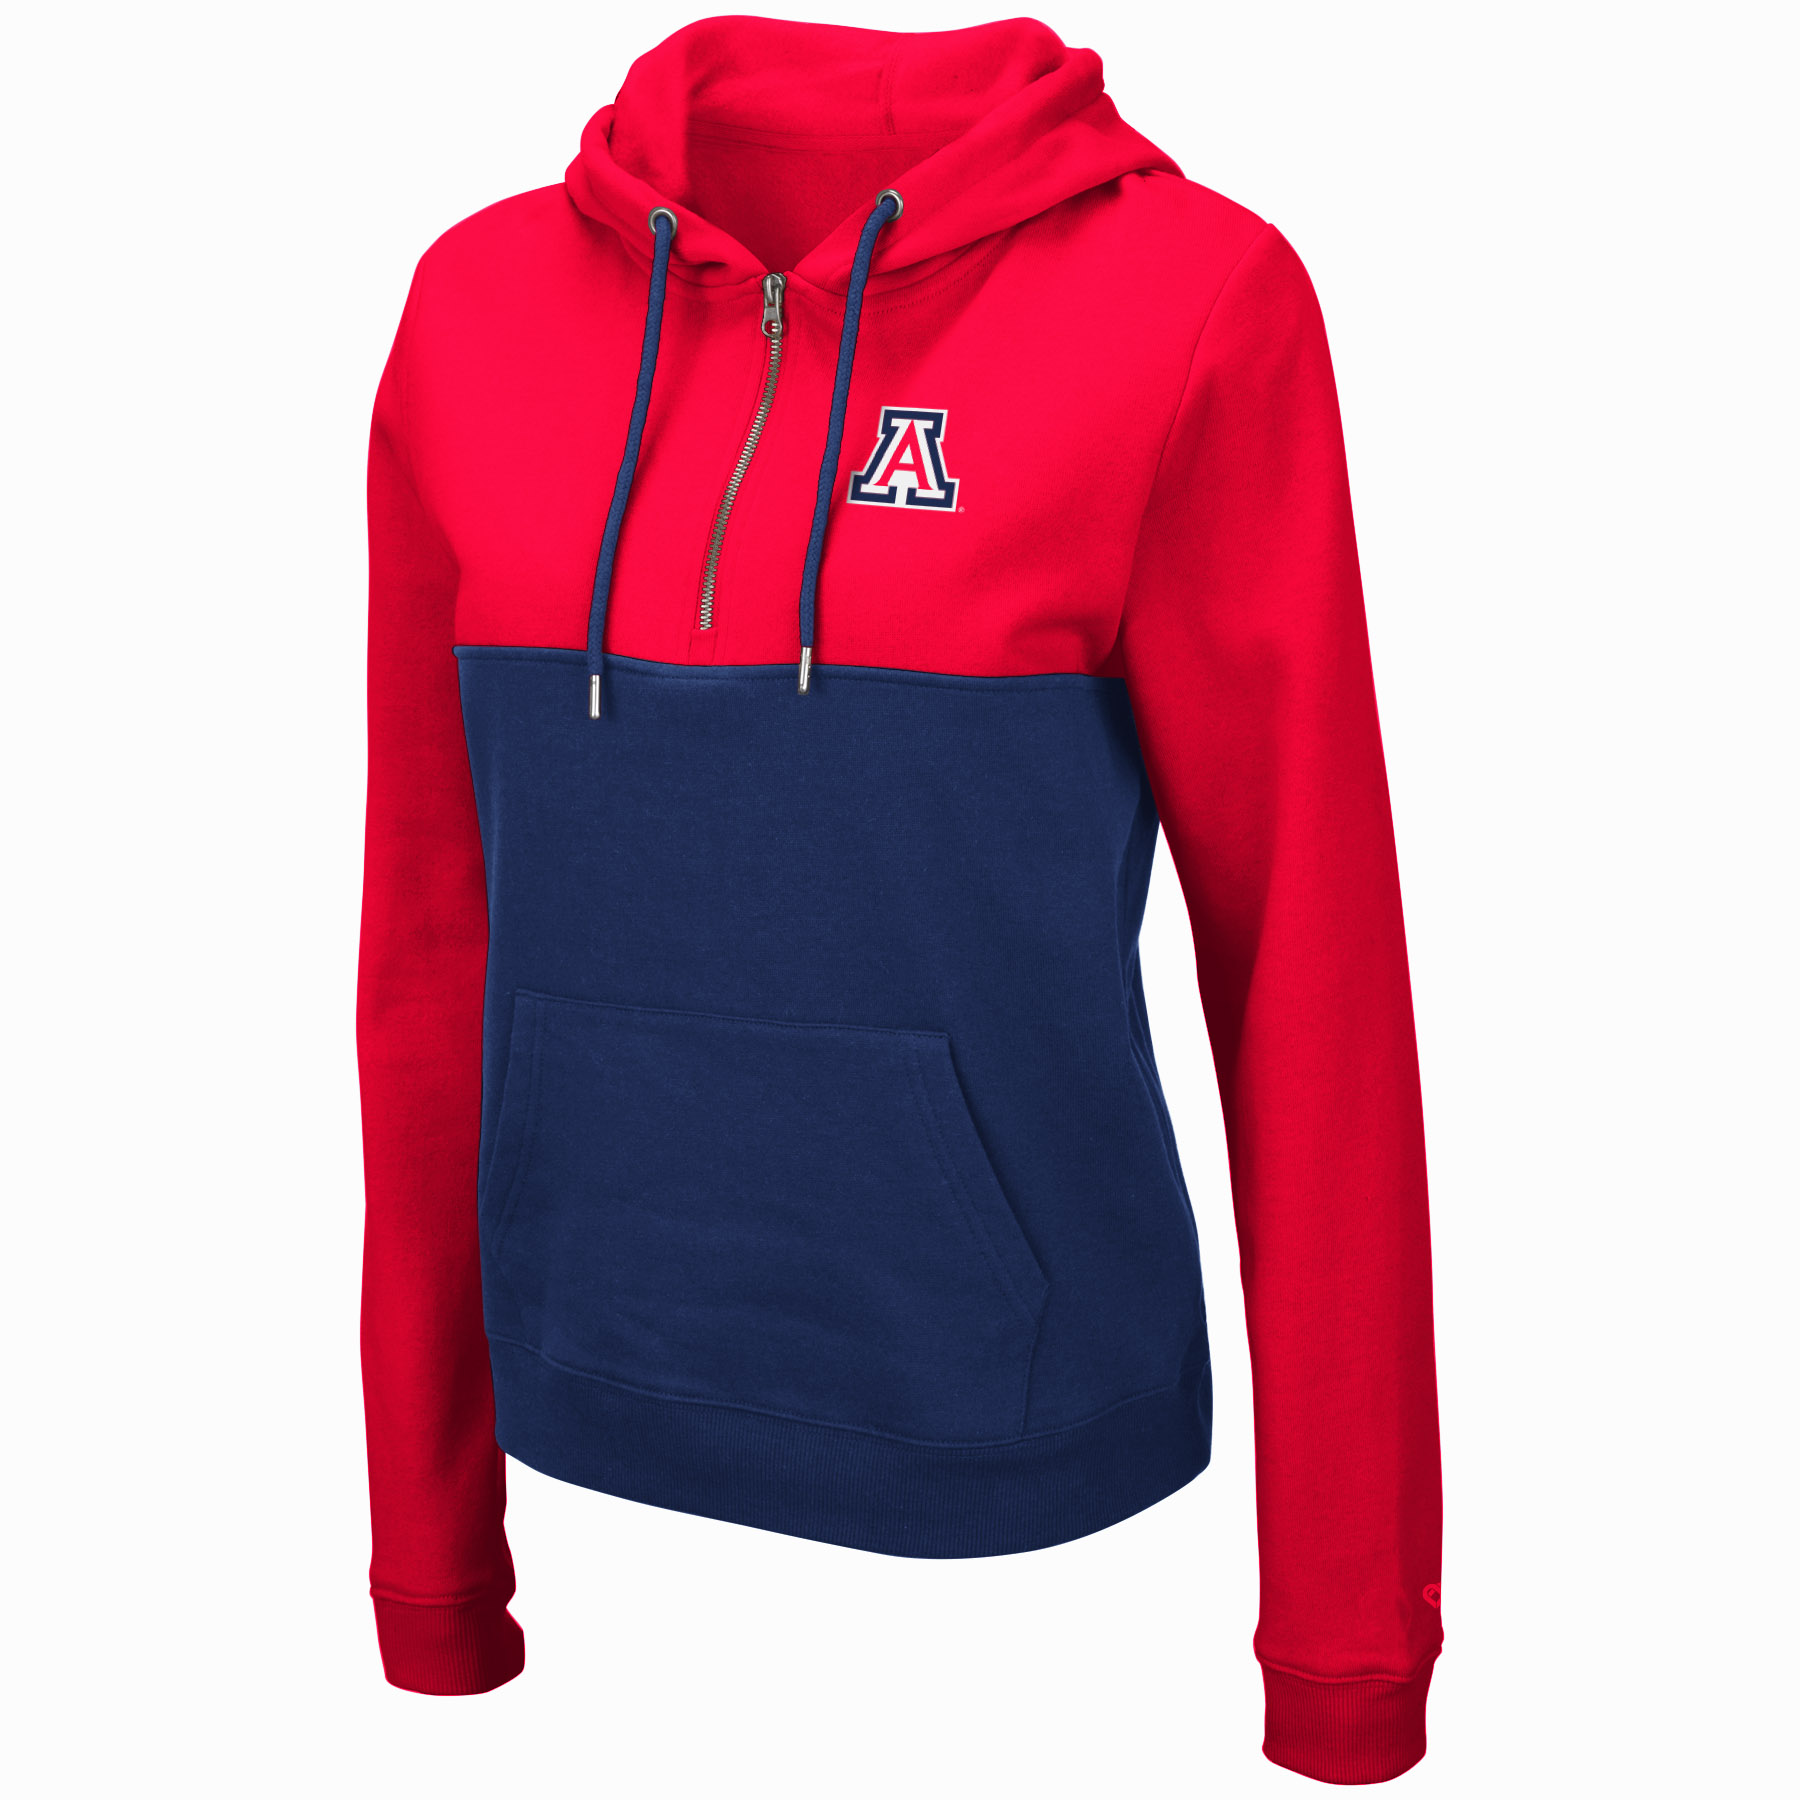 Cover Image For Colosseum: Arizona Women Aidan 1/2 Zip Hoodie